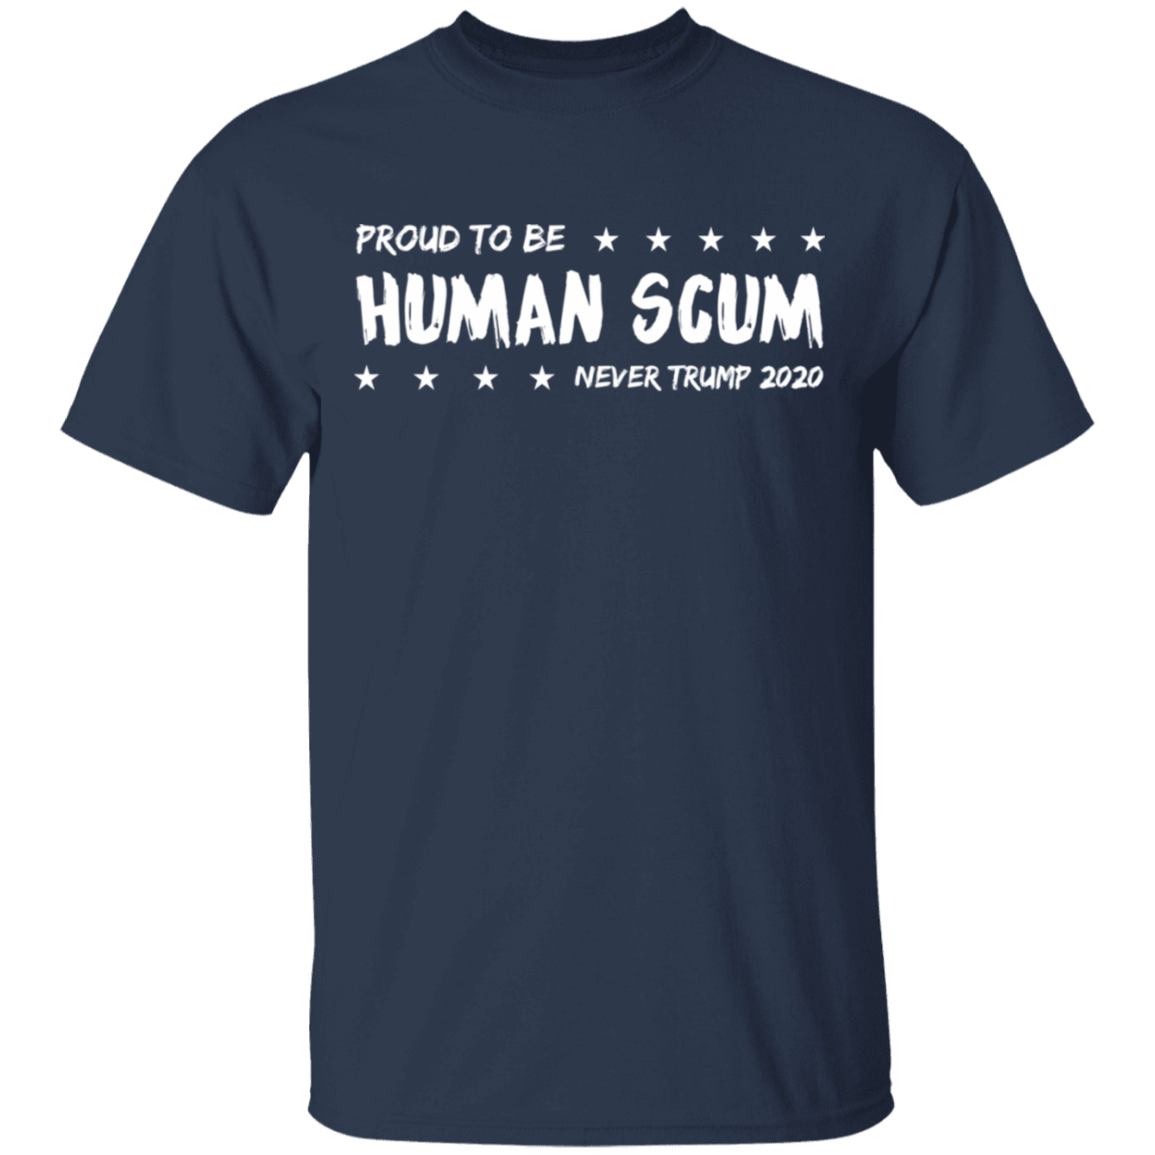 I'm Proud To Be Called Human Scum T-Shirts, Hoodies 1049-9966-82205245-48248 - Tee Ript